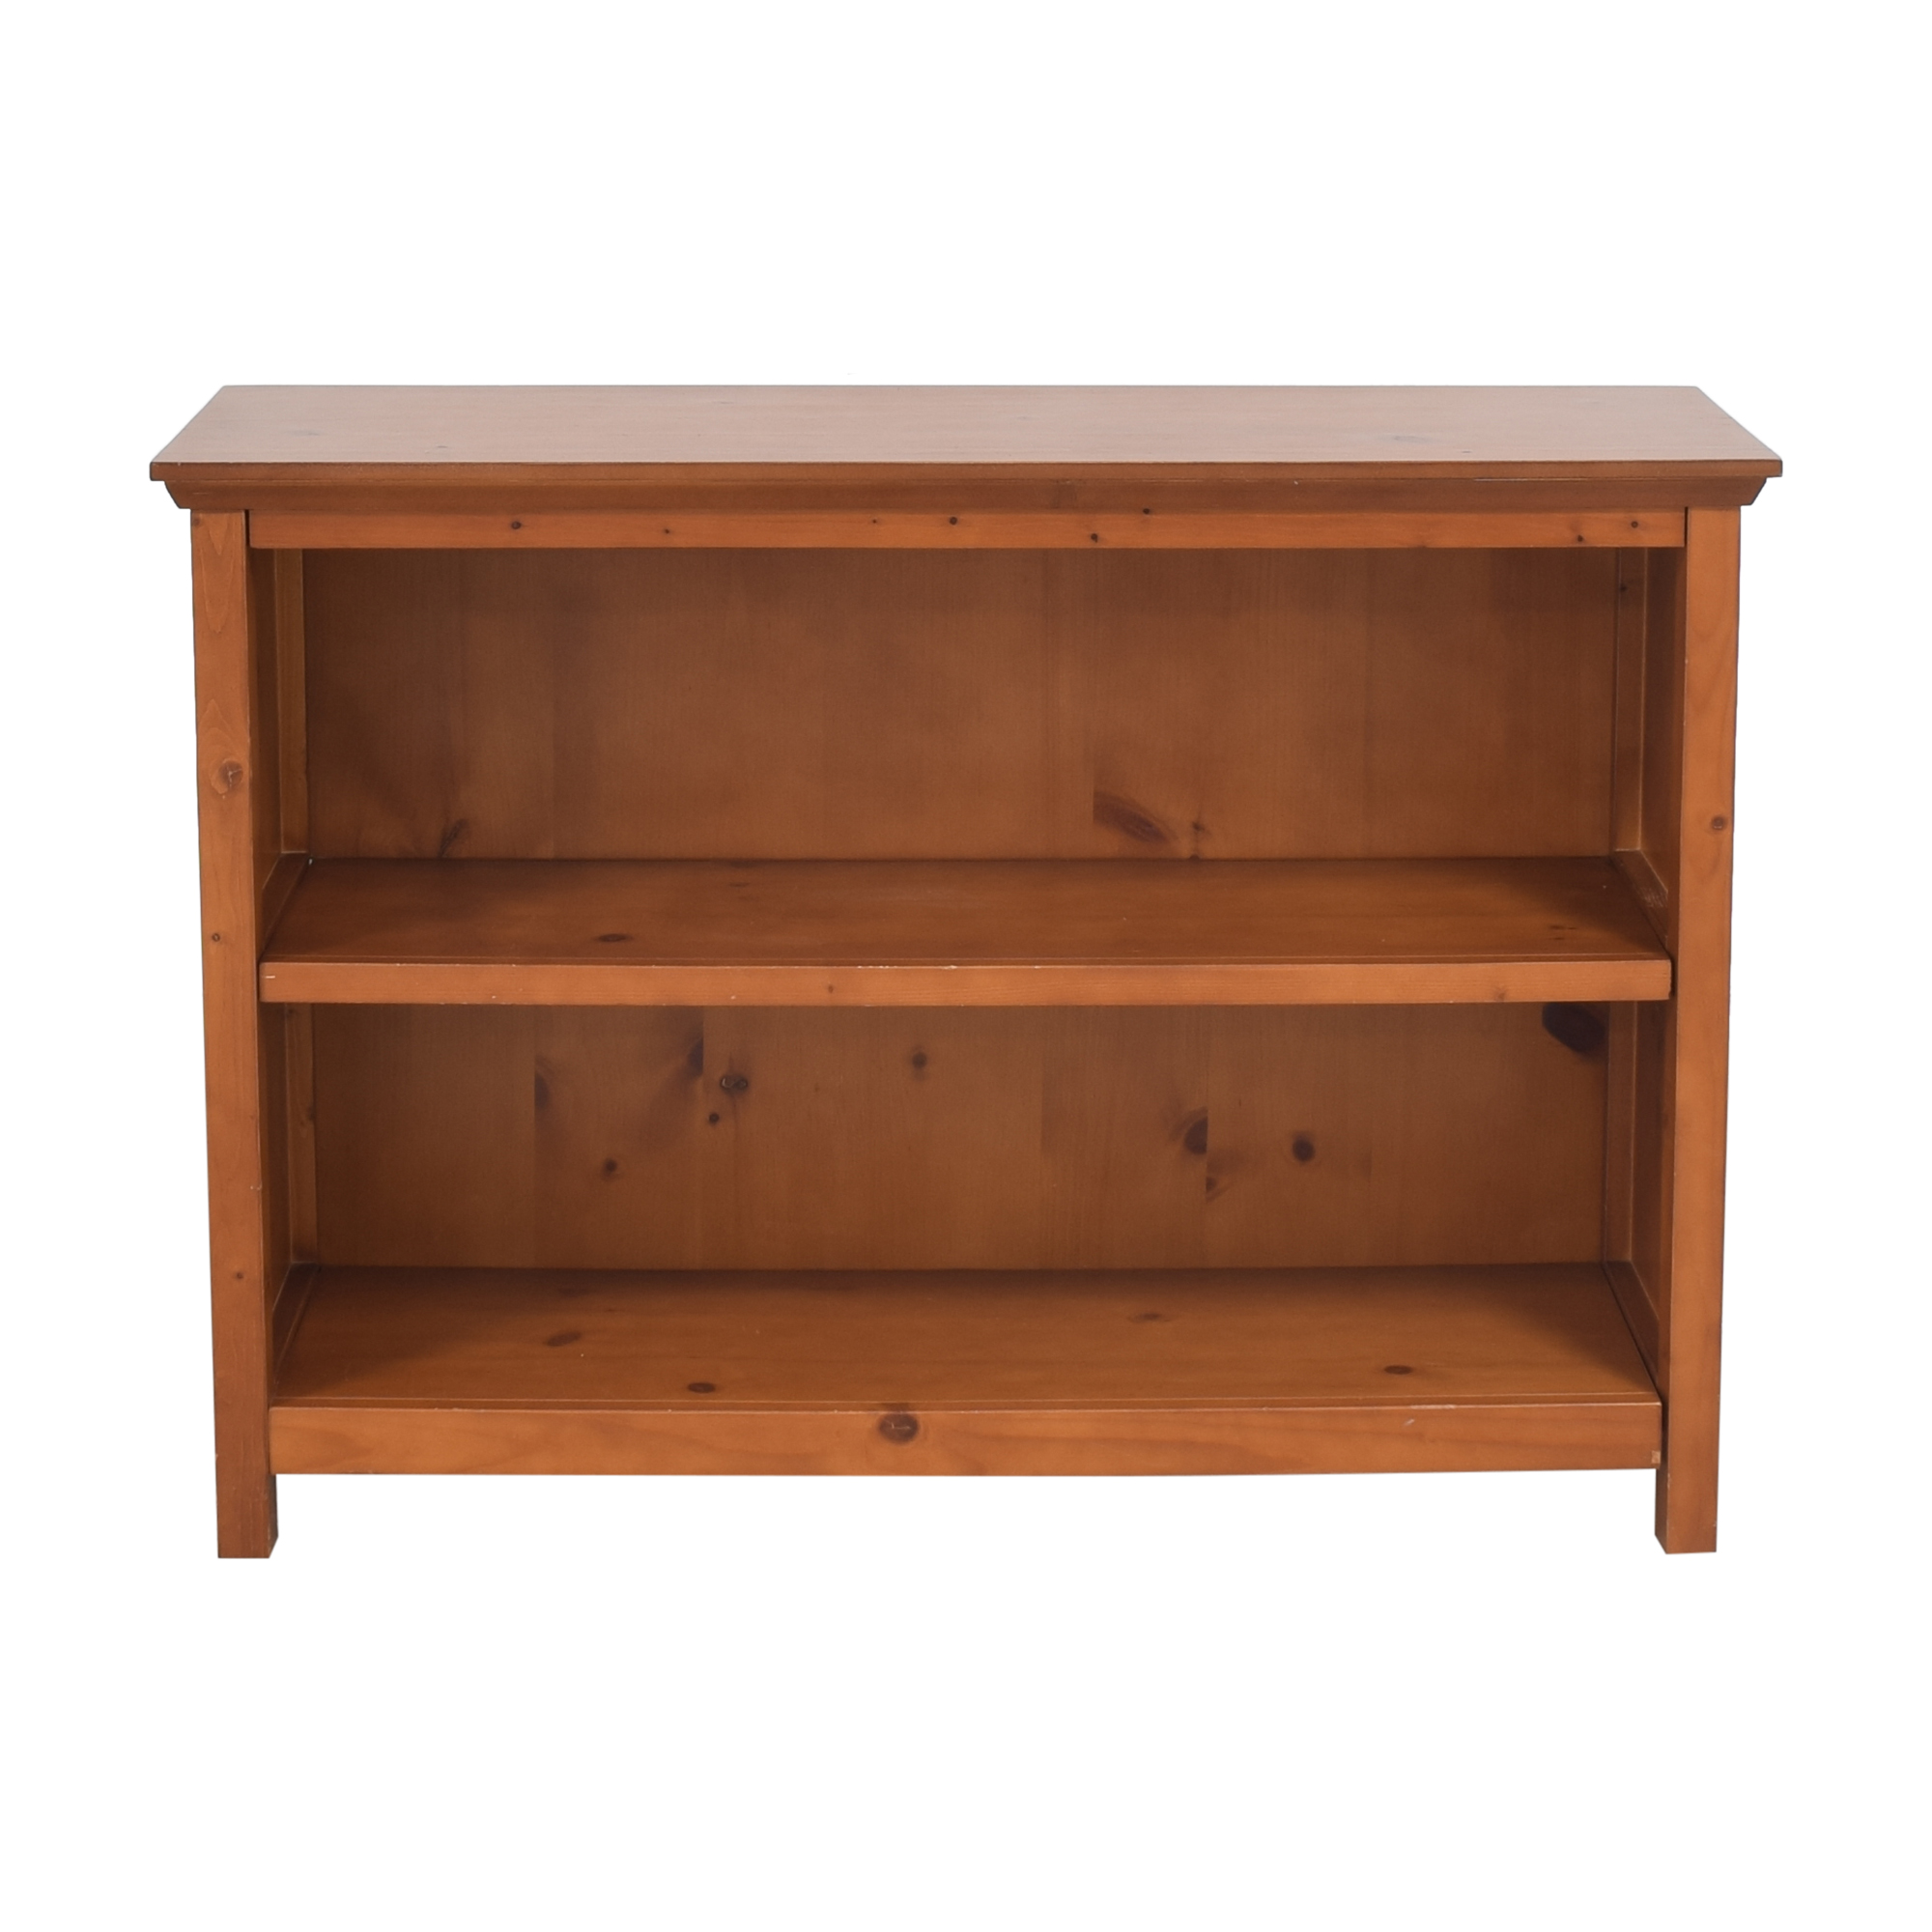 Two Shelf Bookcase second hand